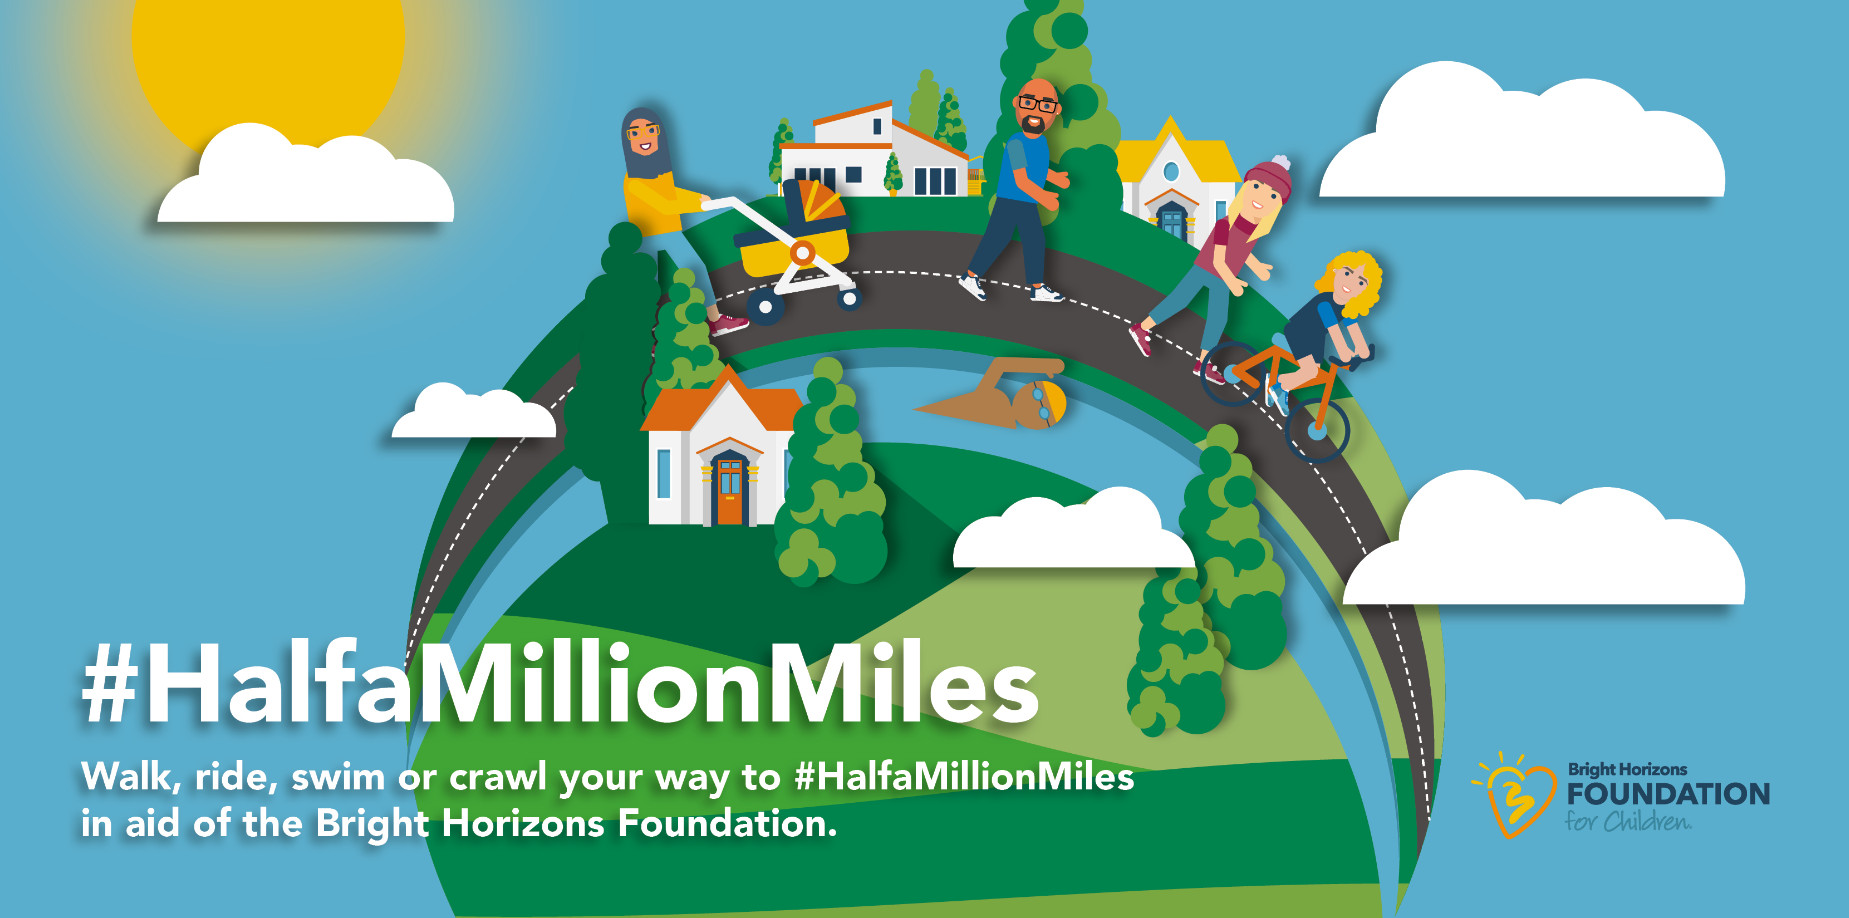 Half a million miles the target for bright horizons this april